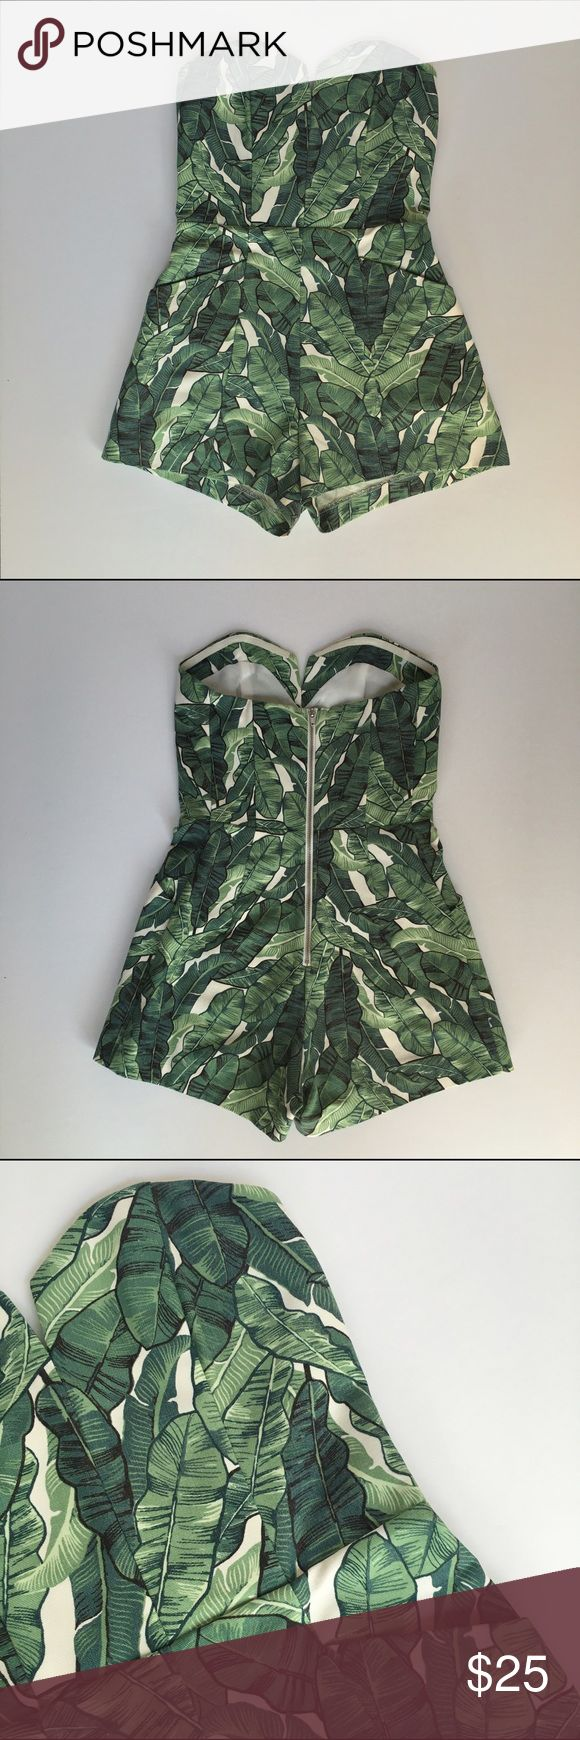 H&M Palm Print Strapless Playsuit H&M CONSCIOUS. Strapless playsuit in woven fabric. Bodice with boning, silicone trim inside upper edge, and seam at waist. Side pockets, short legs, and visible back zip. Unlined. Cotton content is organic. H&M Other